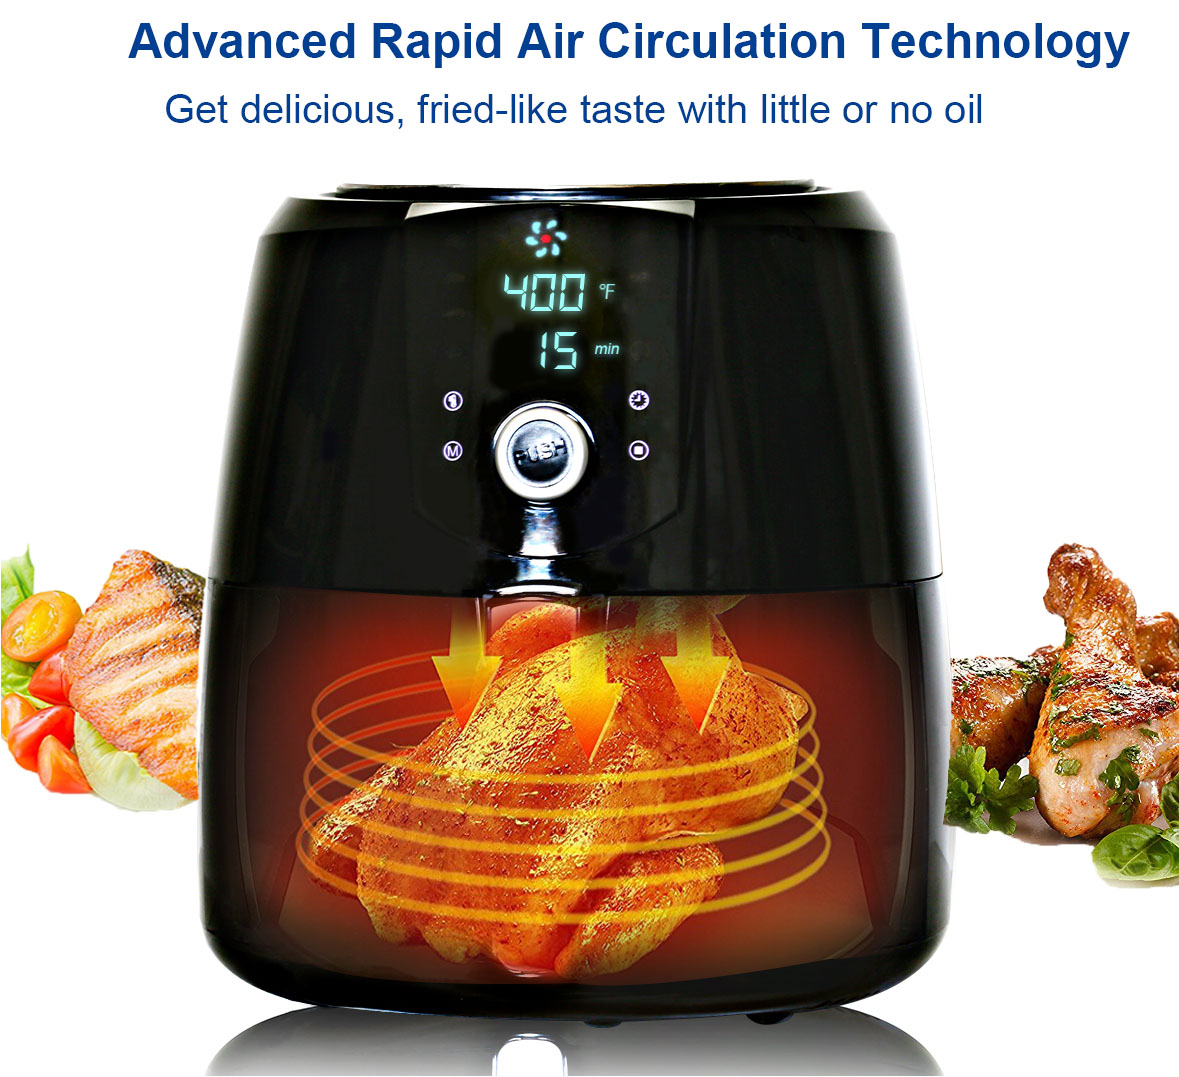 Rapid Air Circulation Technology for Healthier Cooking.png